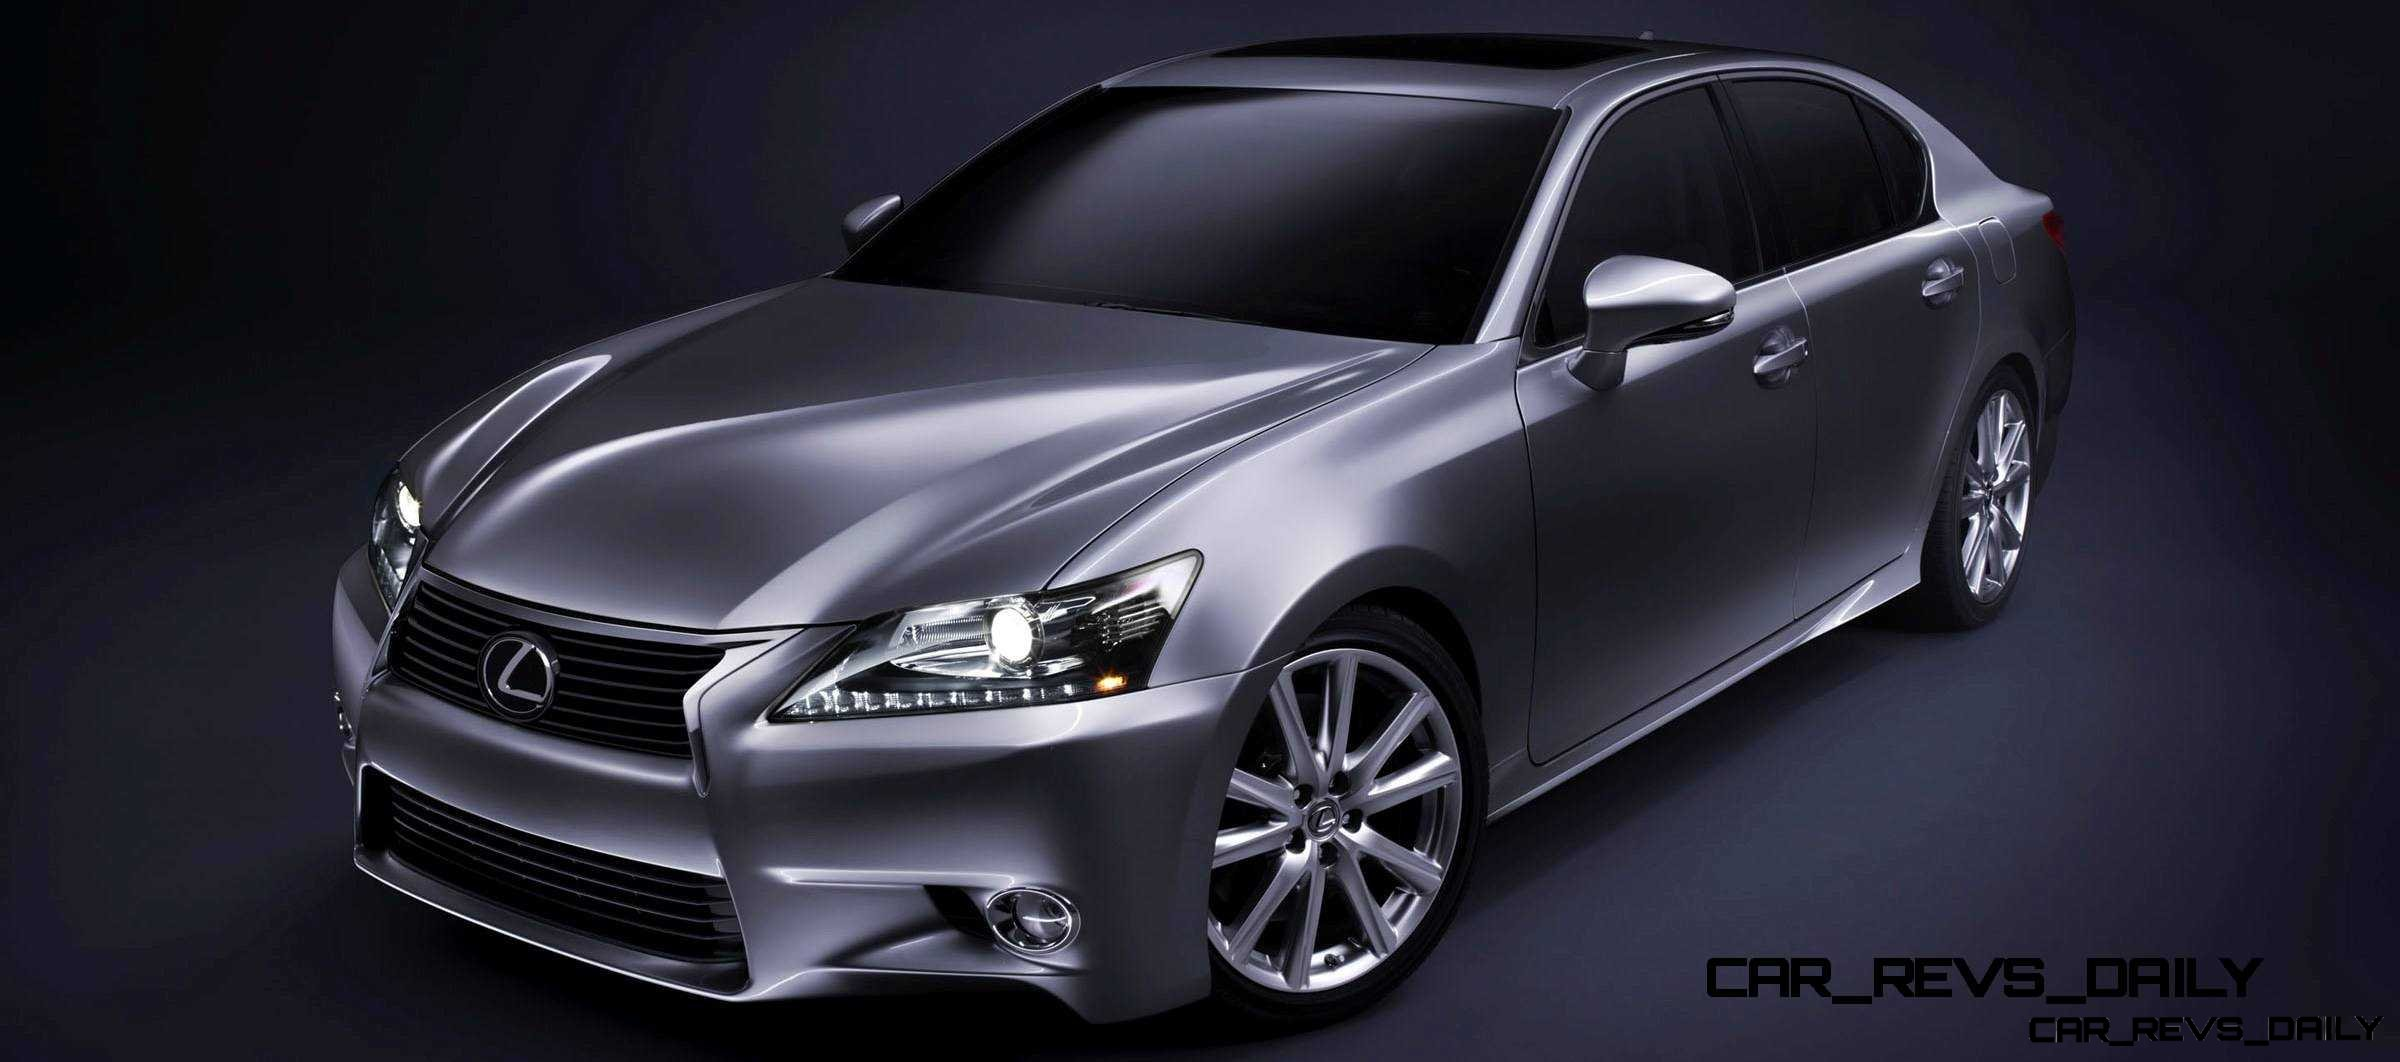 2014 lexus gs 350 013. Black Bedroom Furniture Sets. Home Design Ideas